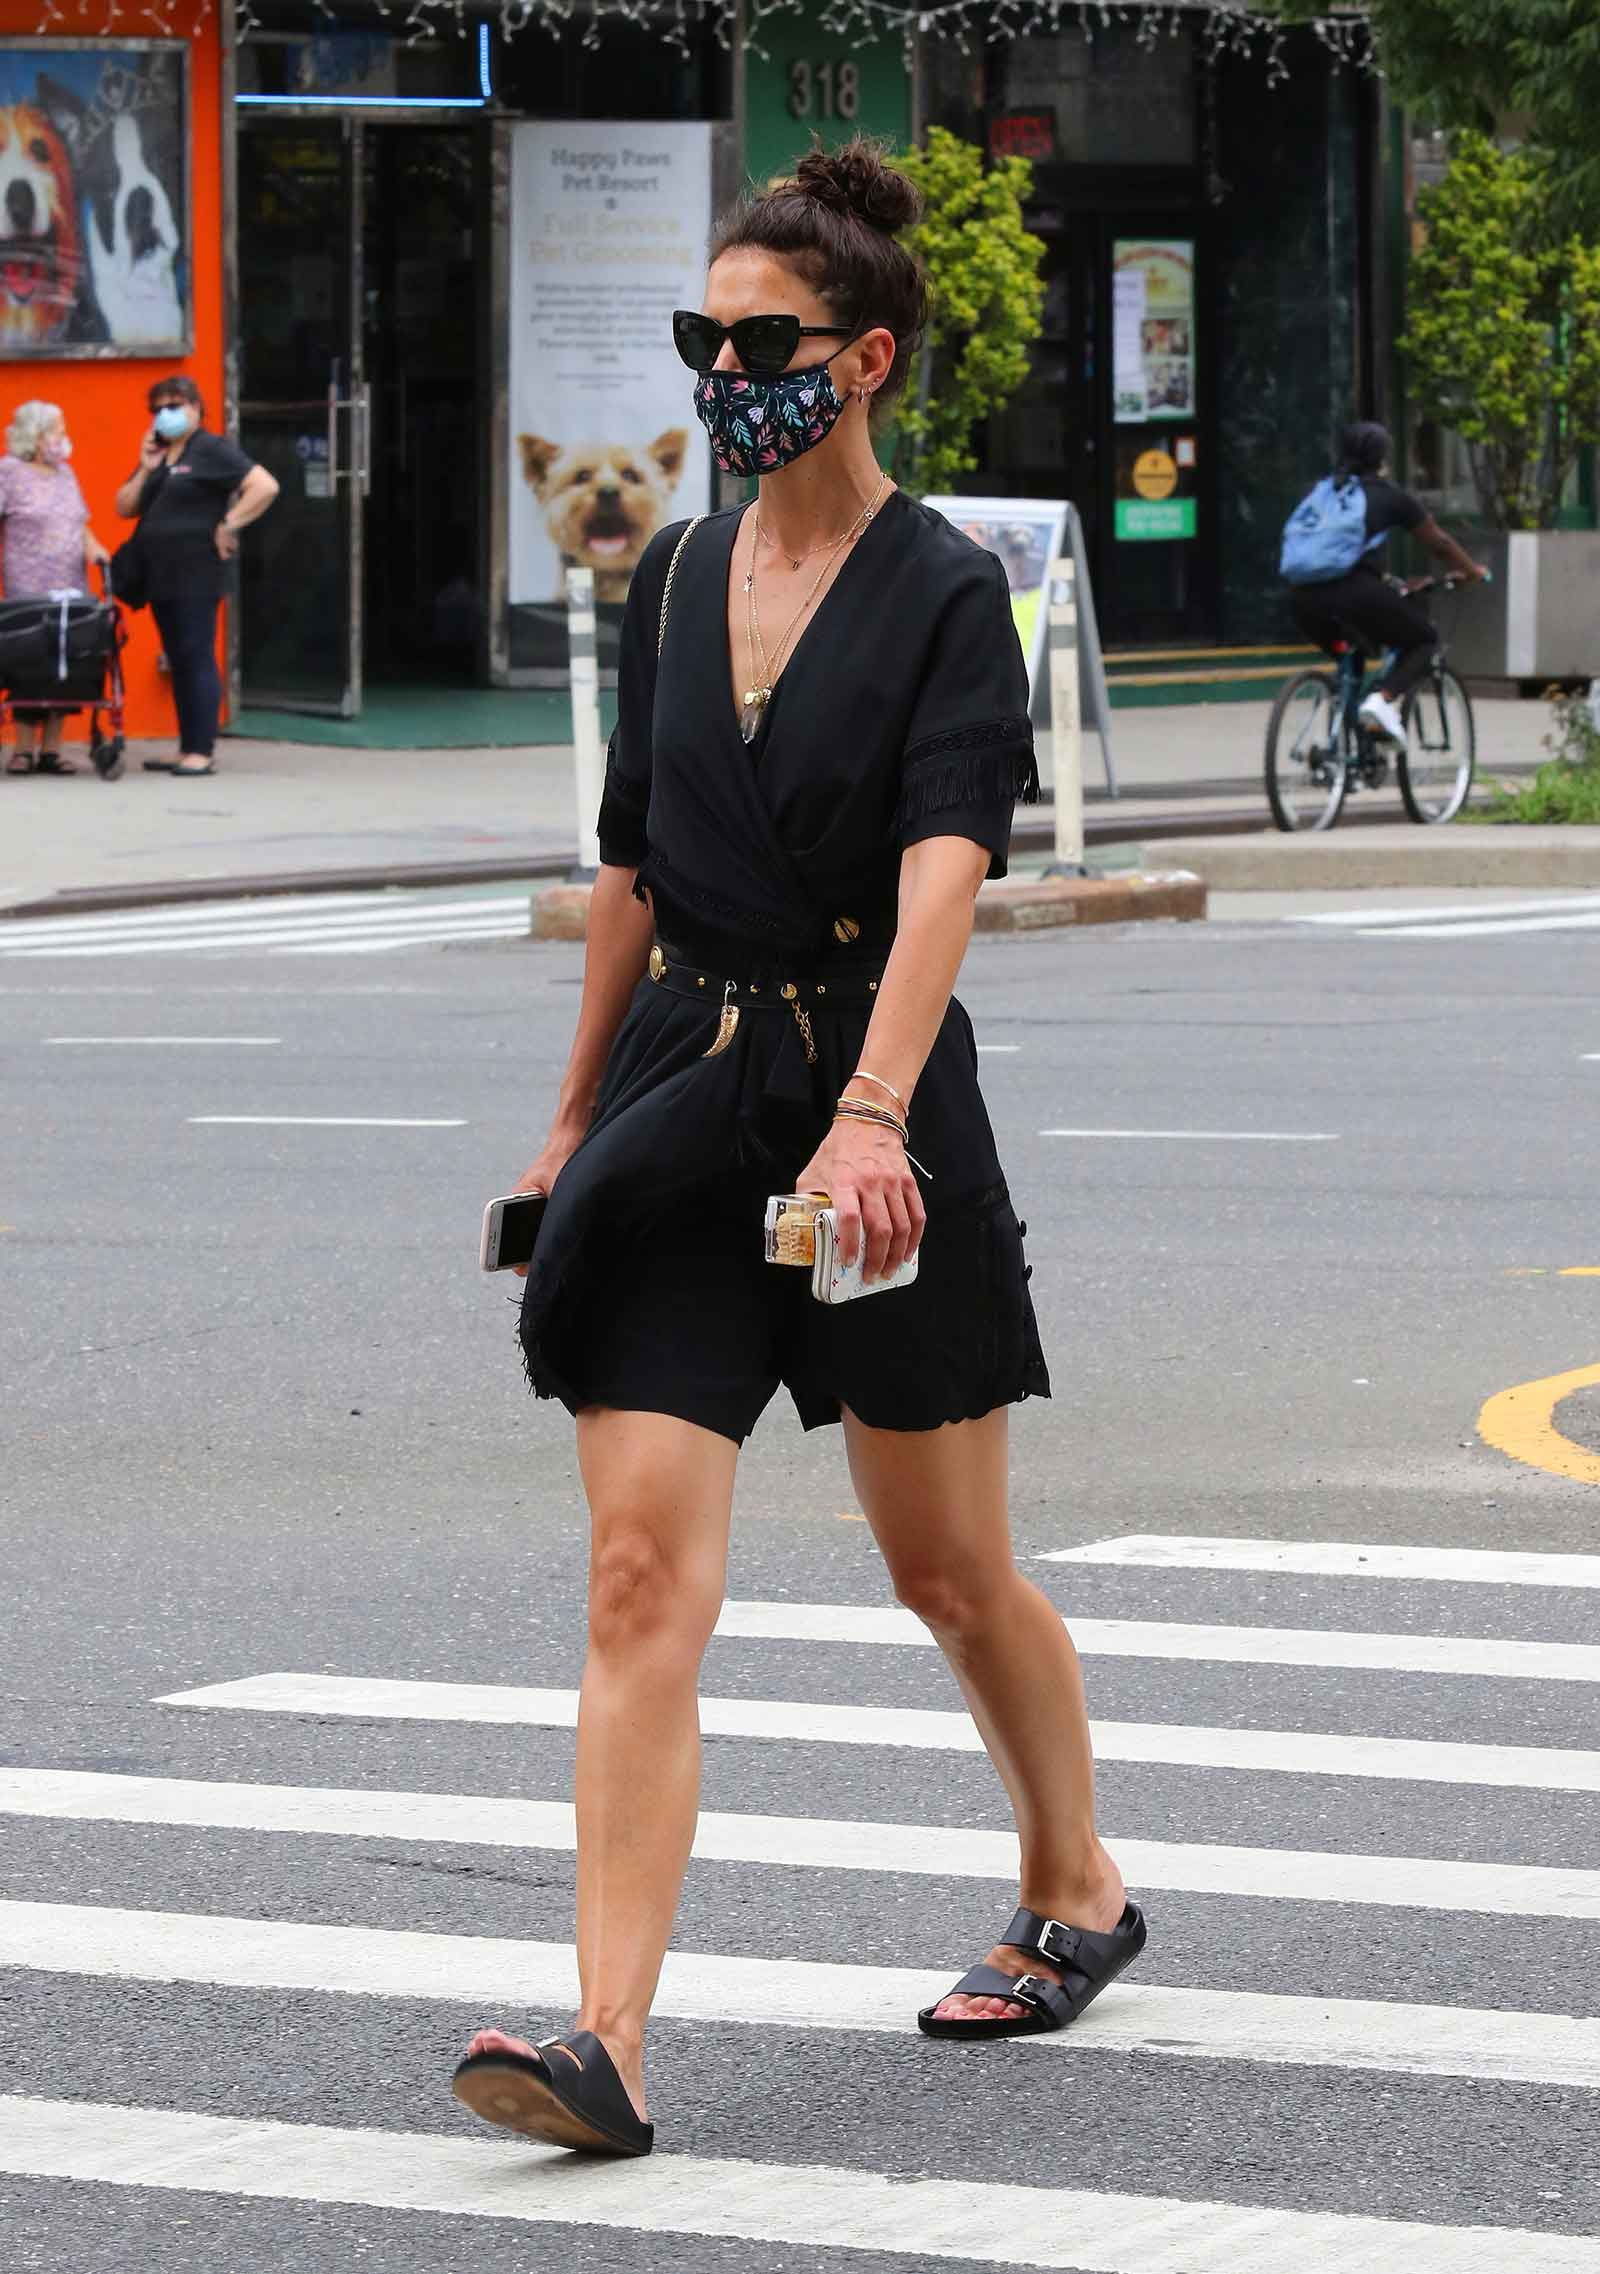 Katie Holmes looks chic in a black romper while out and about in NYC